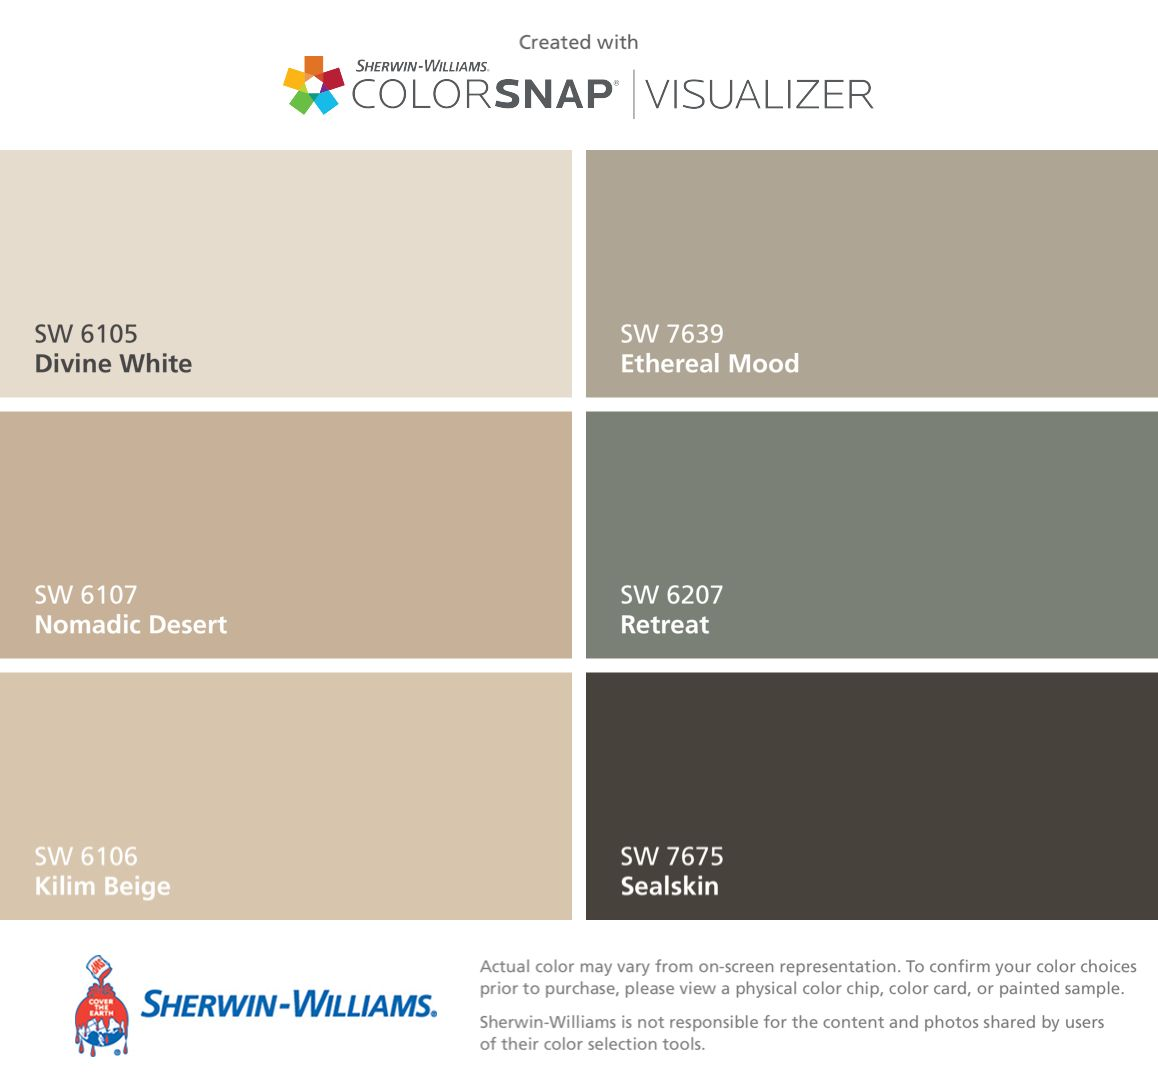 I found these colors with colorsnap visualizer for iphone by sherwin williams divine white sw 6105 nomadic desert sw 6107 kilim beige sw 6106